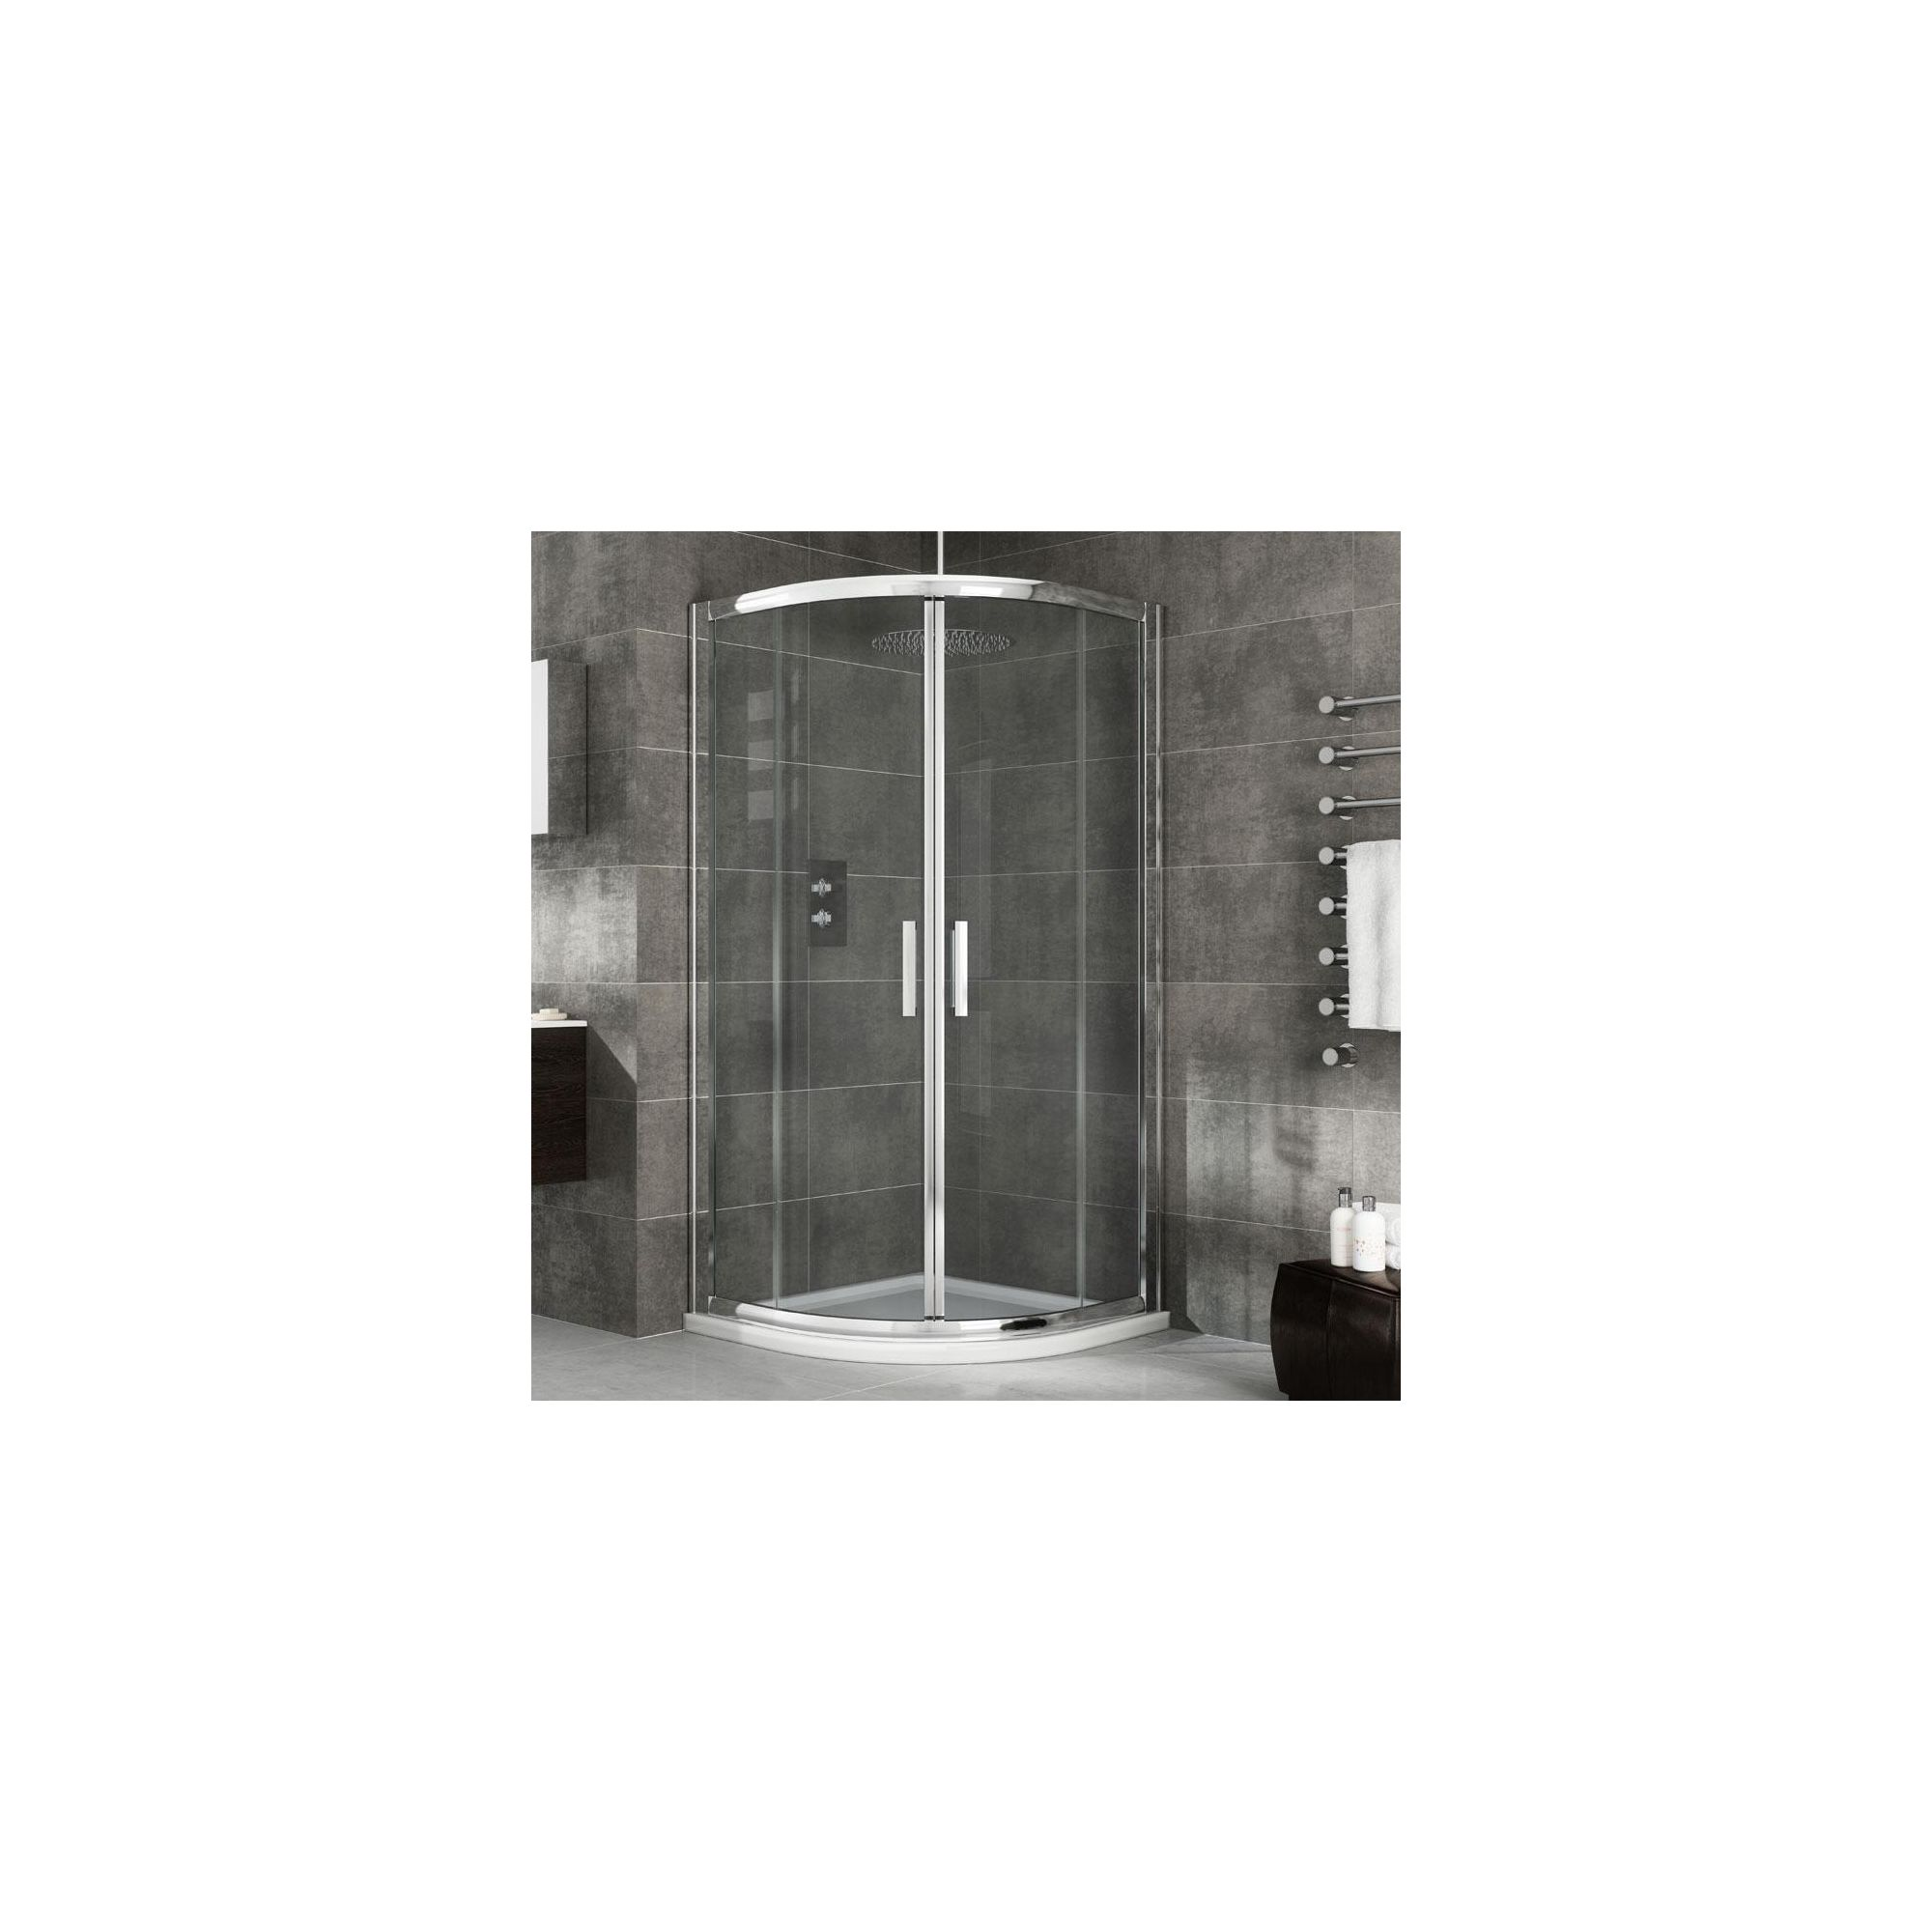 Elemis Eternity Two-Door Quadrant Shower Enclosure, 900mm x 900mm, 8mm Glass, Low Profile Tray at Tesco Direct